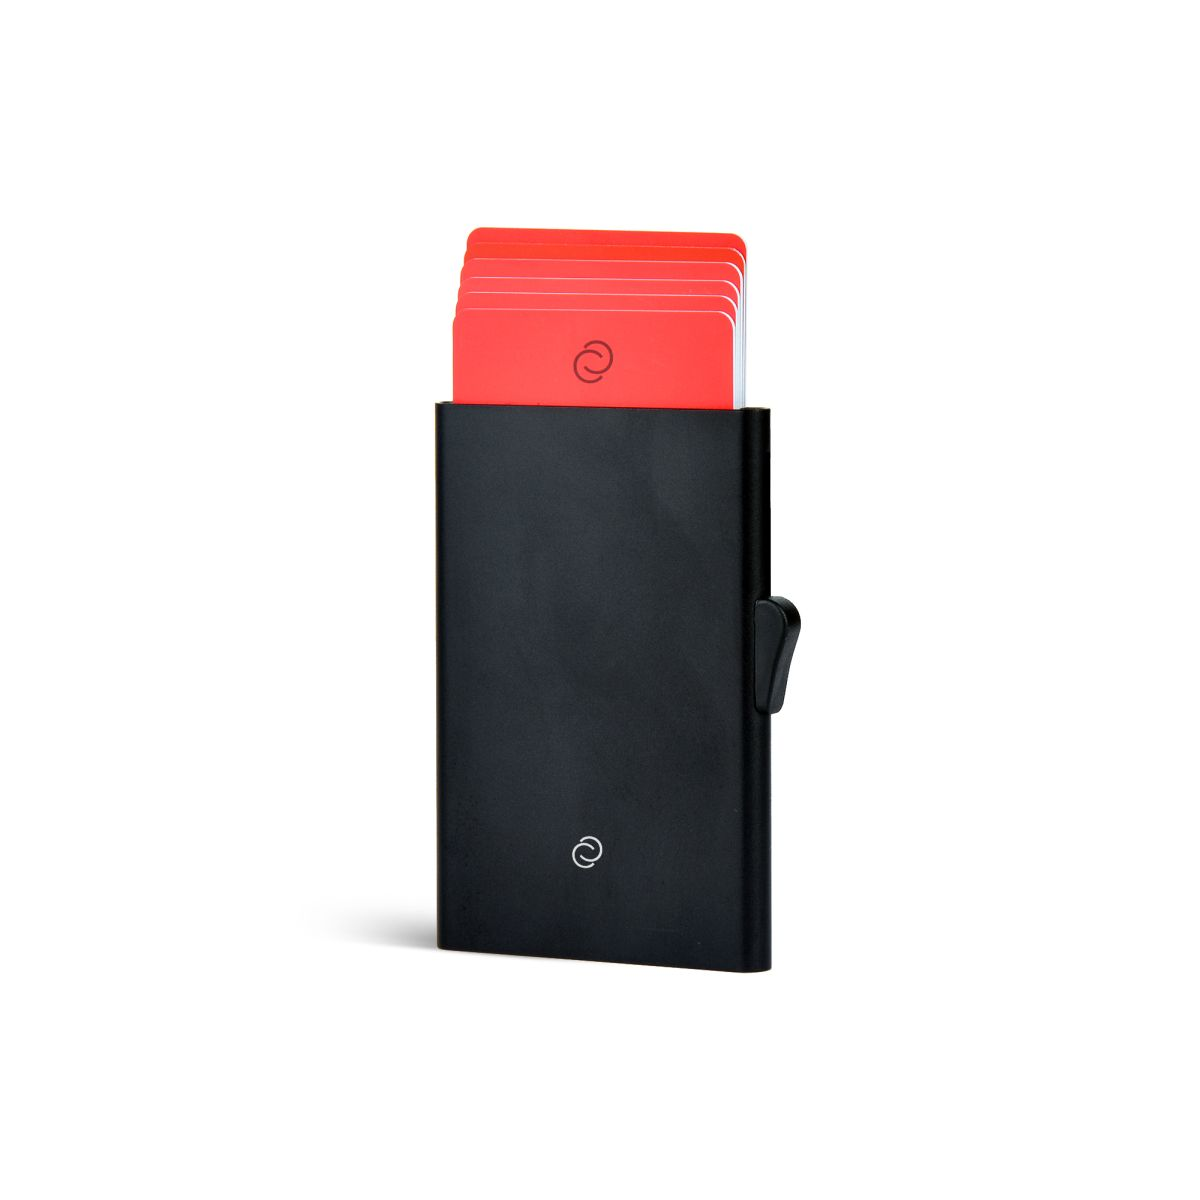 Slim Aluminum Card Holder - Black